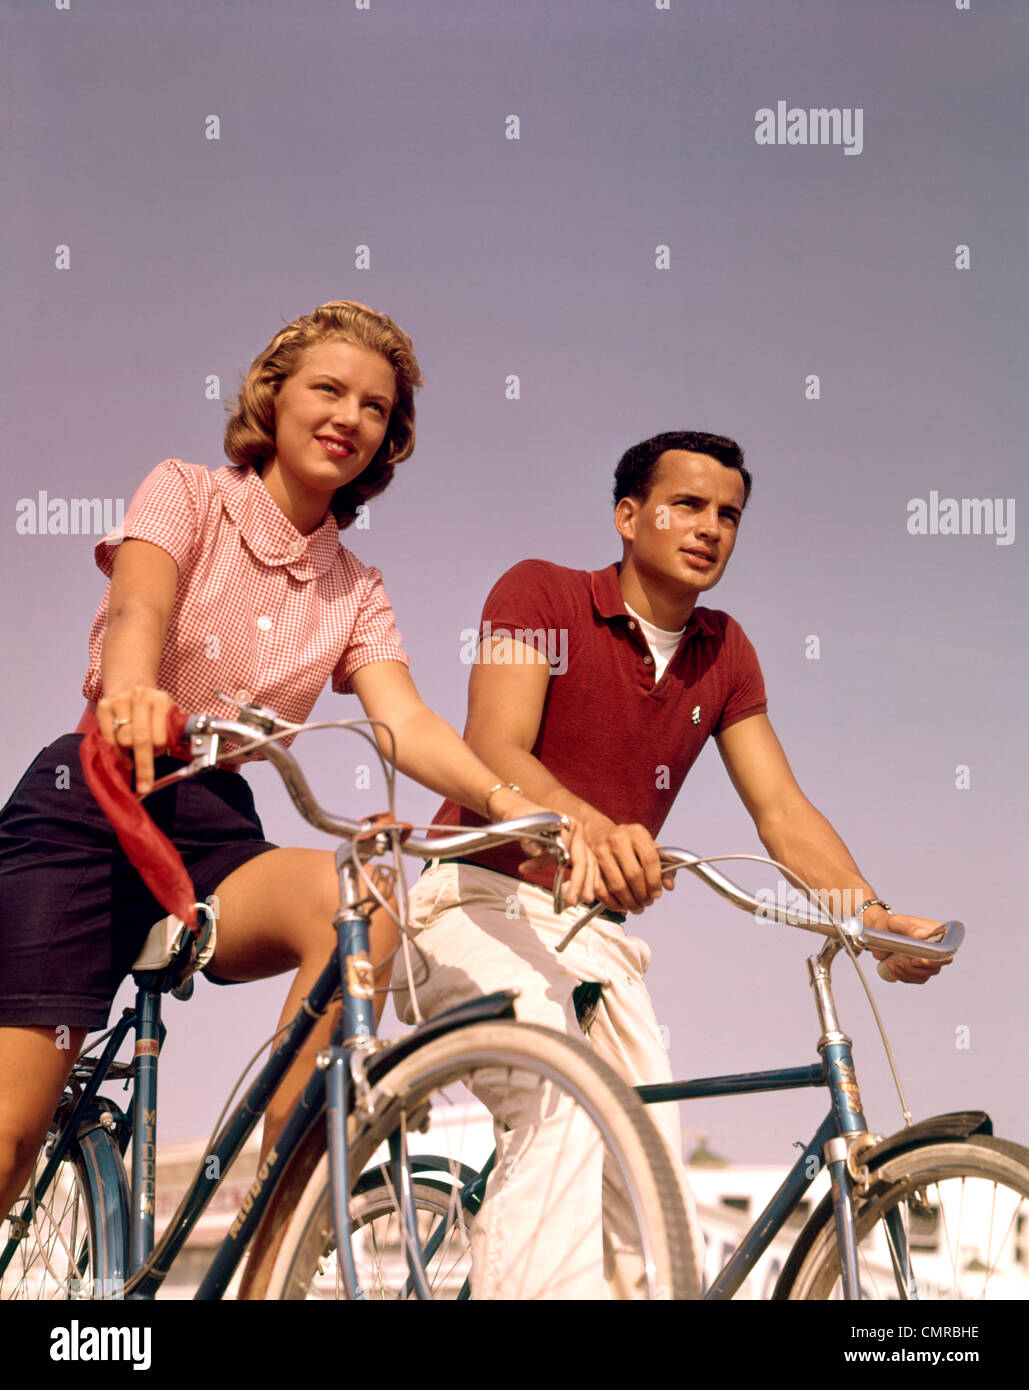 Années 1950 Années 1960 HOMME FEMME COUPLE Riding BICYCLES OUTDOORS Photo Stock